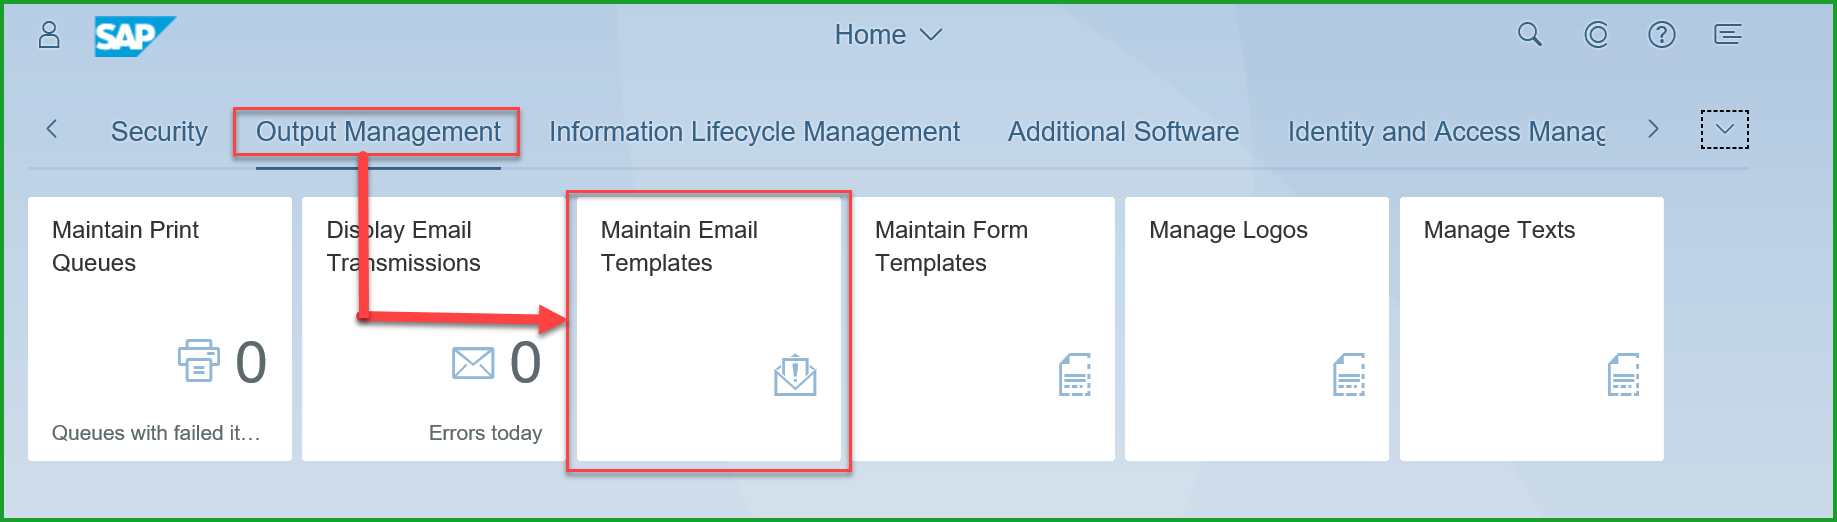 output management customize email form for payment advice sap blogs